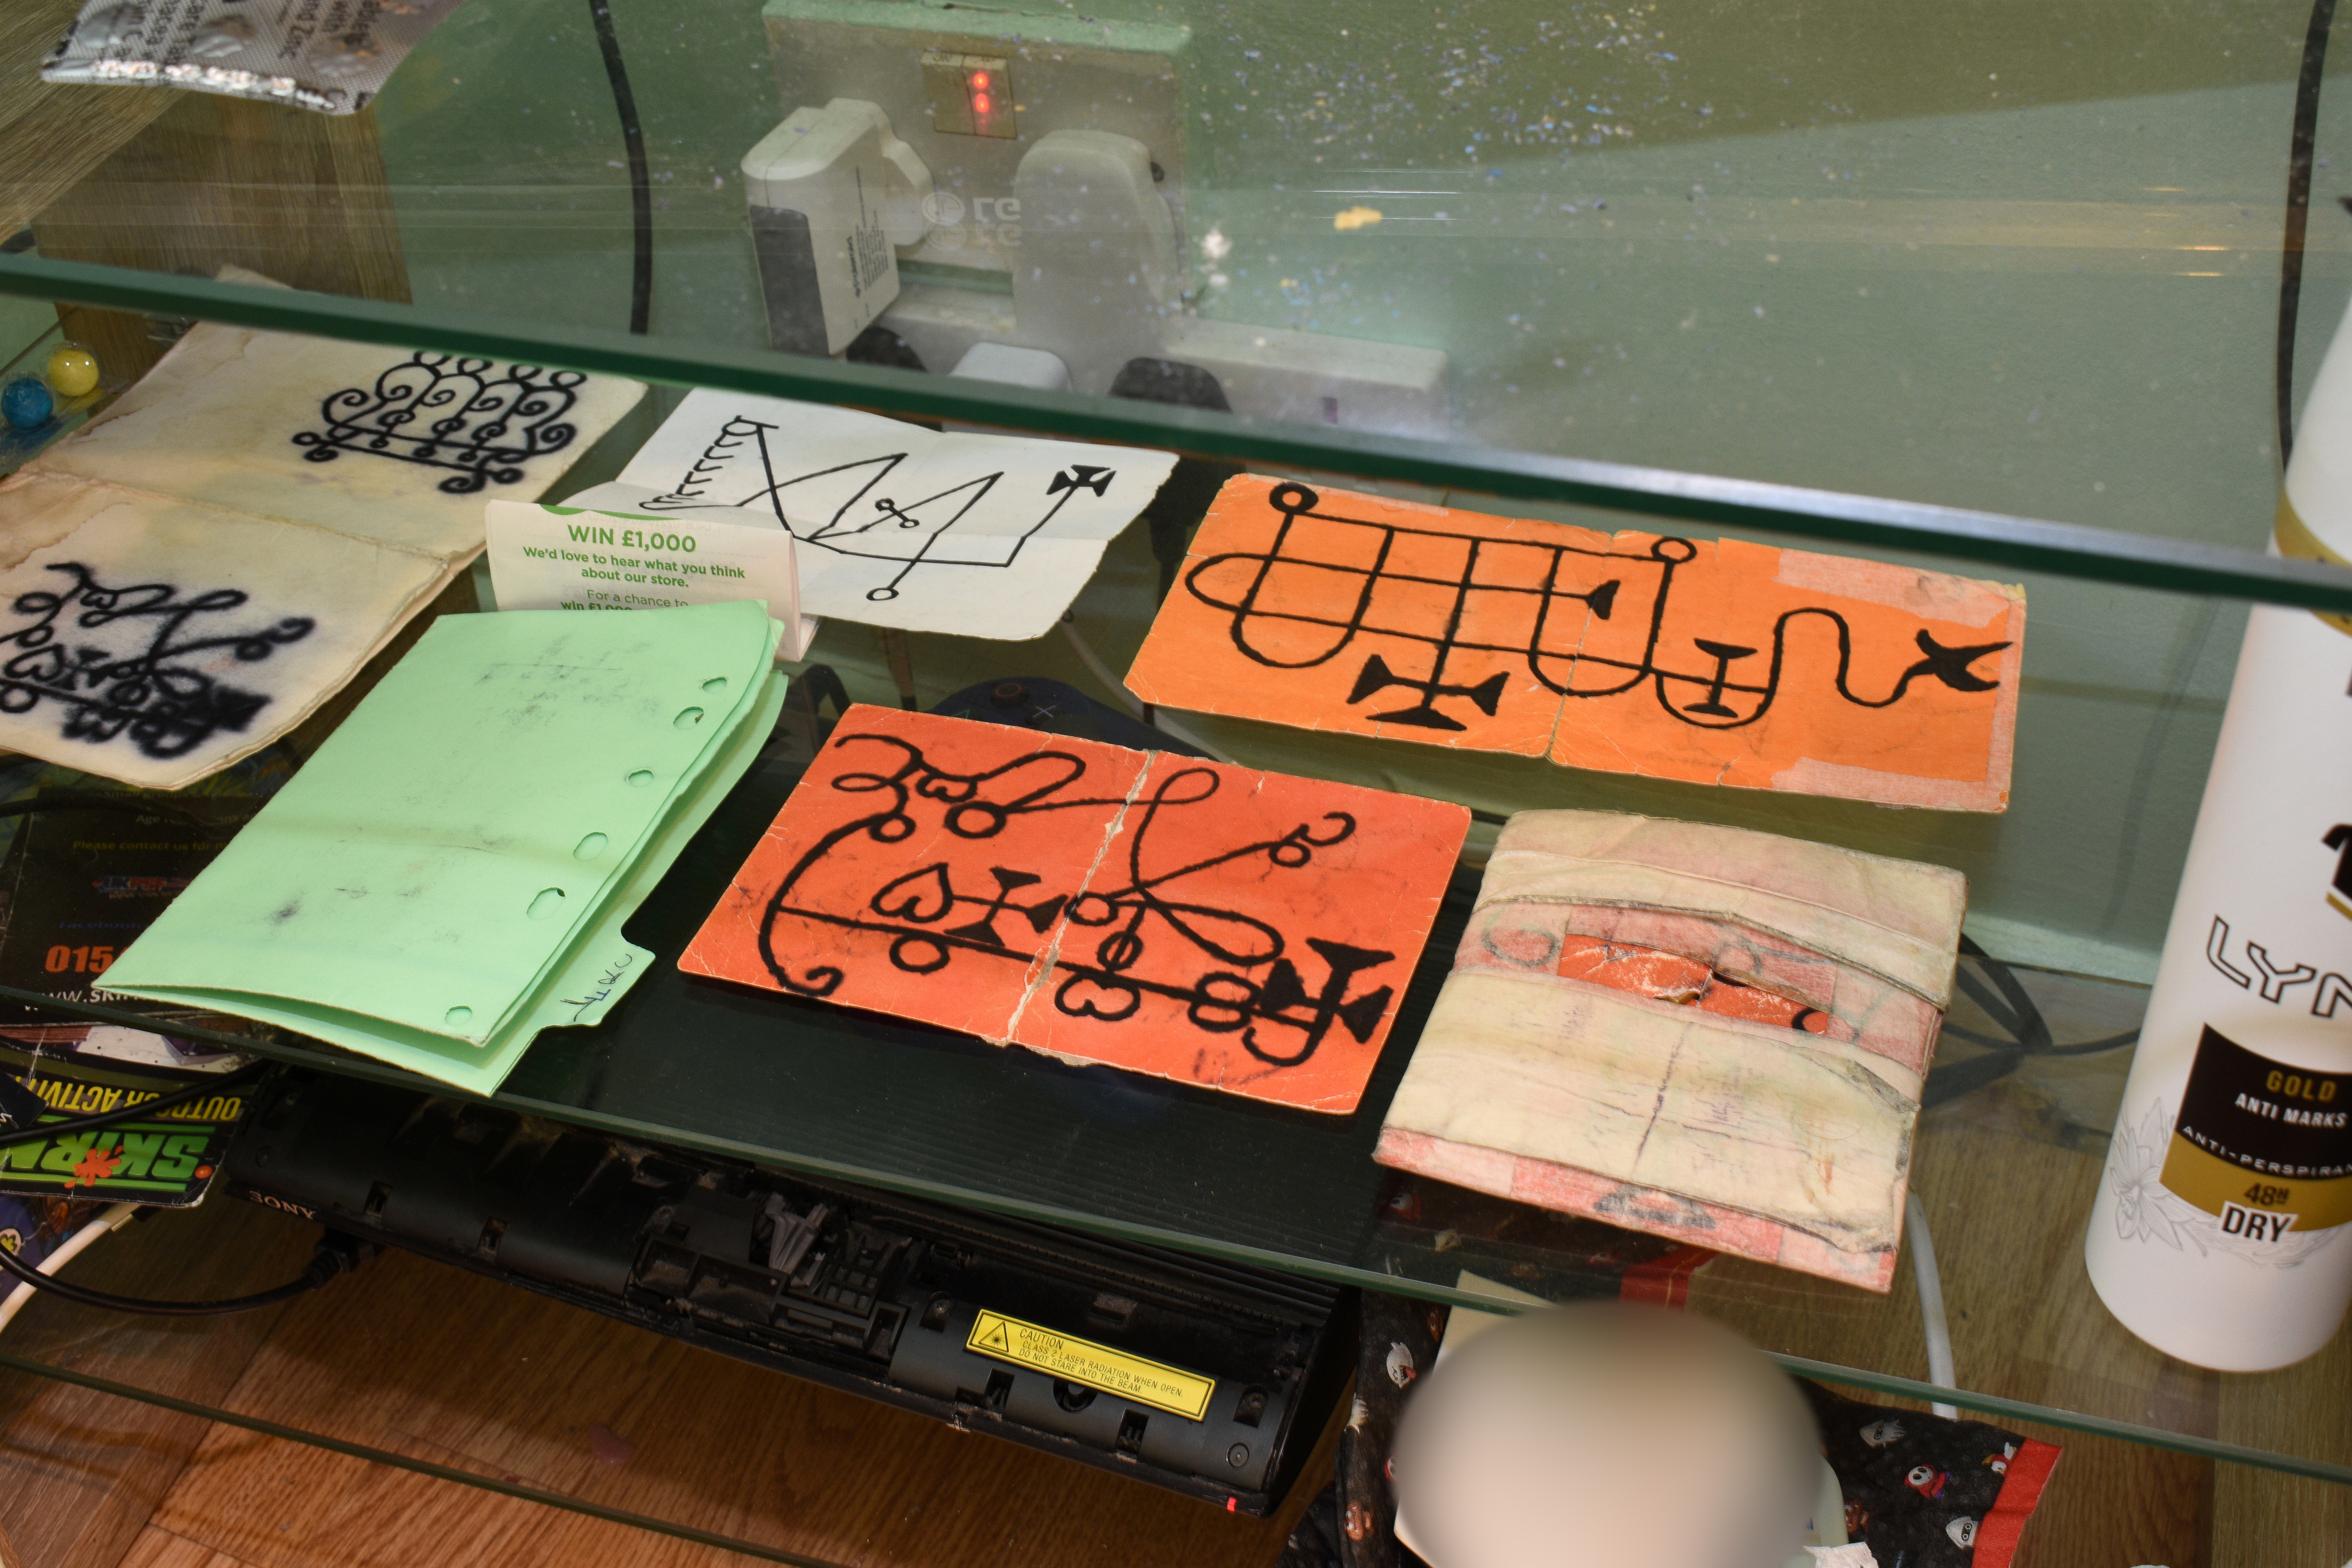 A handwritten book of spells, symbols and lottery tickets are pictured inside the house of Danyal Hussein, British teenager who was found guilty on July 6, 2021 of murdering two women in a London park in June 2020 as part of a demonic pact to win lottery, in this undated handout picture.    Metropolitan Police/Handout via REUTERS